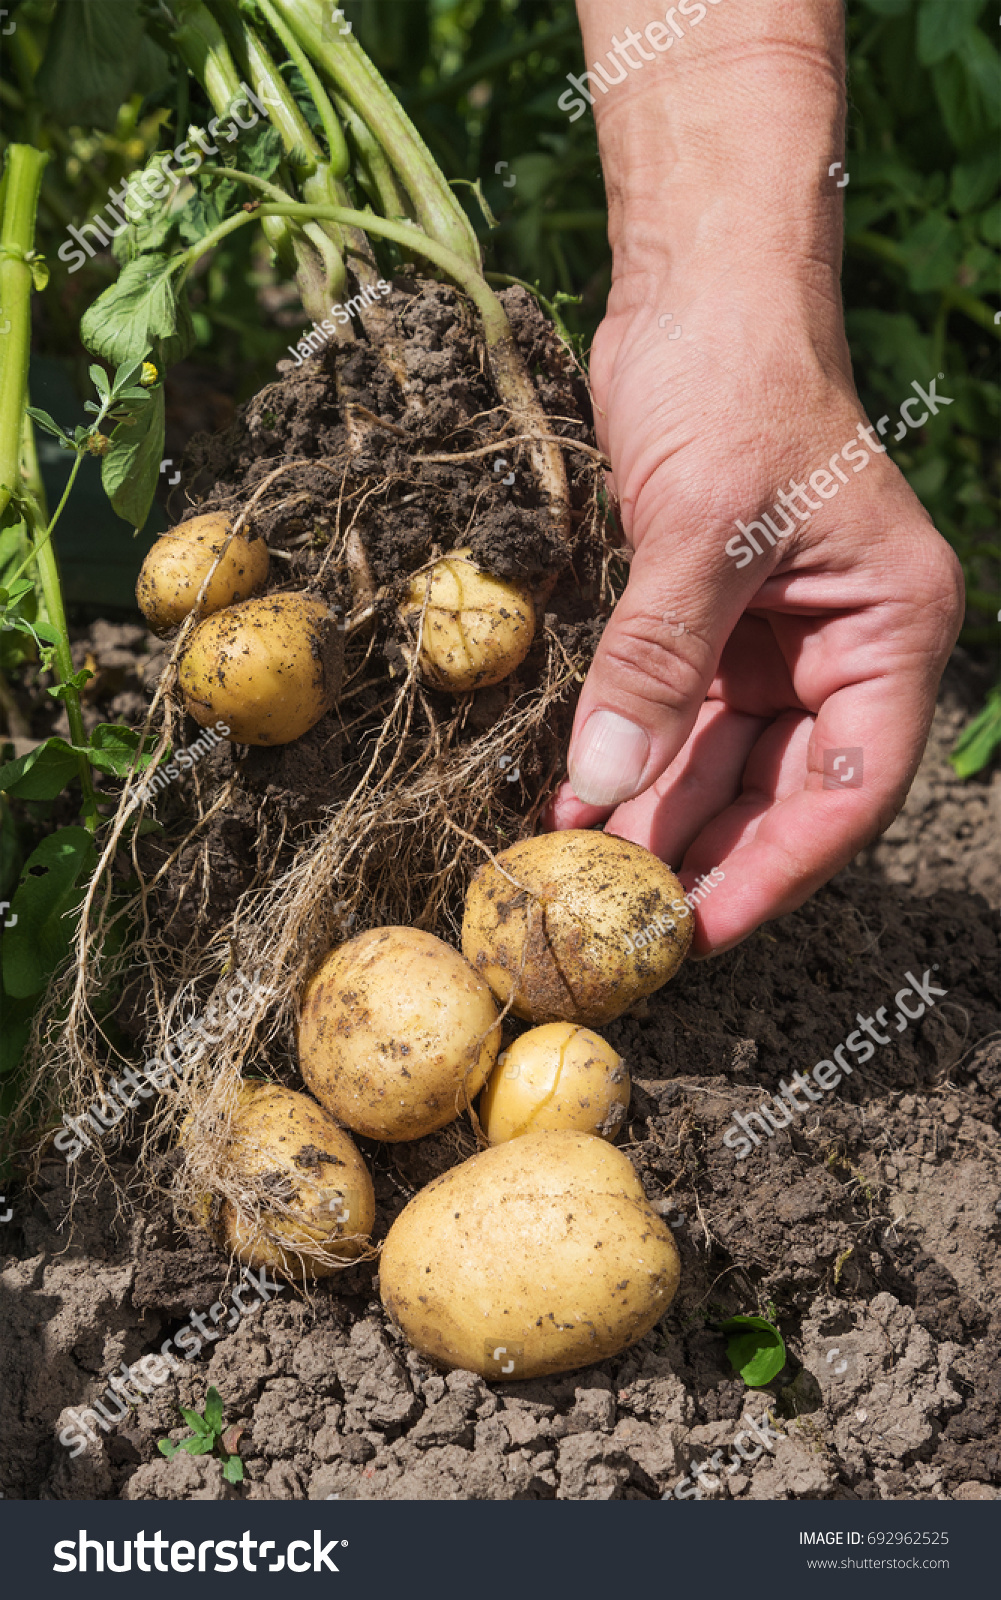 Harvesting New Potatoes Hobby Garden Stock Photo (Royalty Free ...